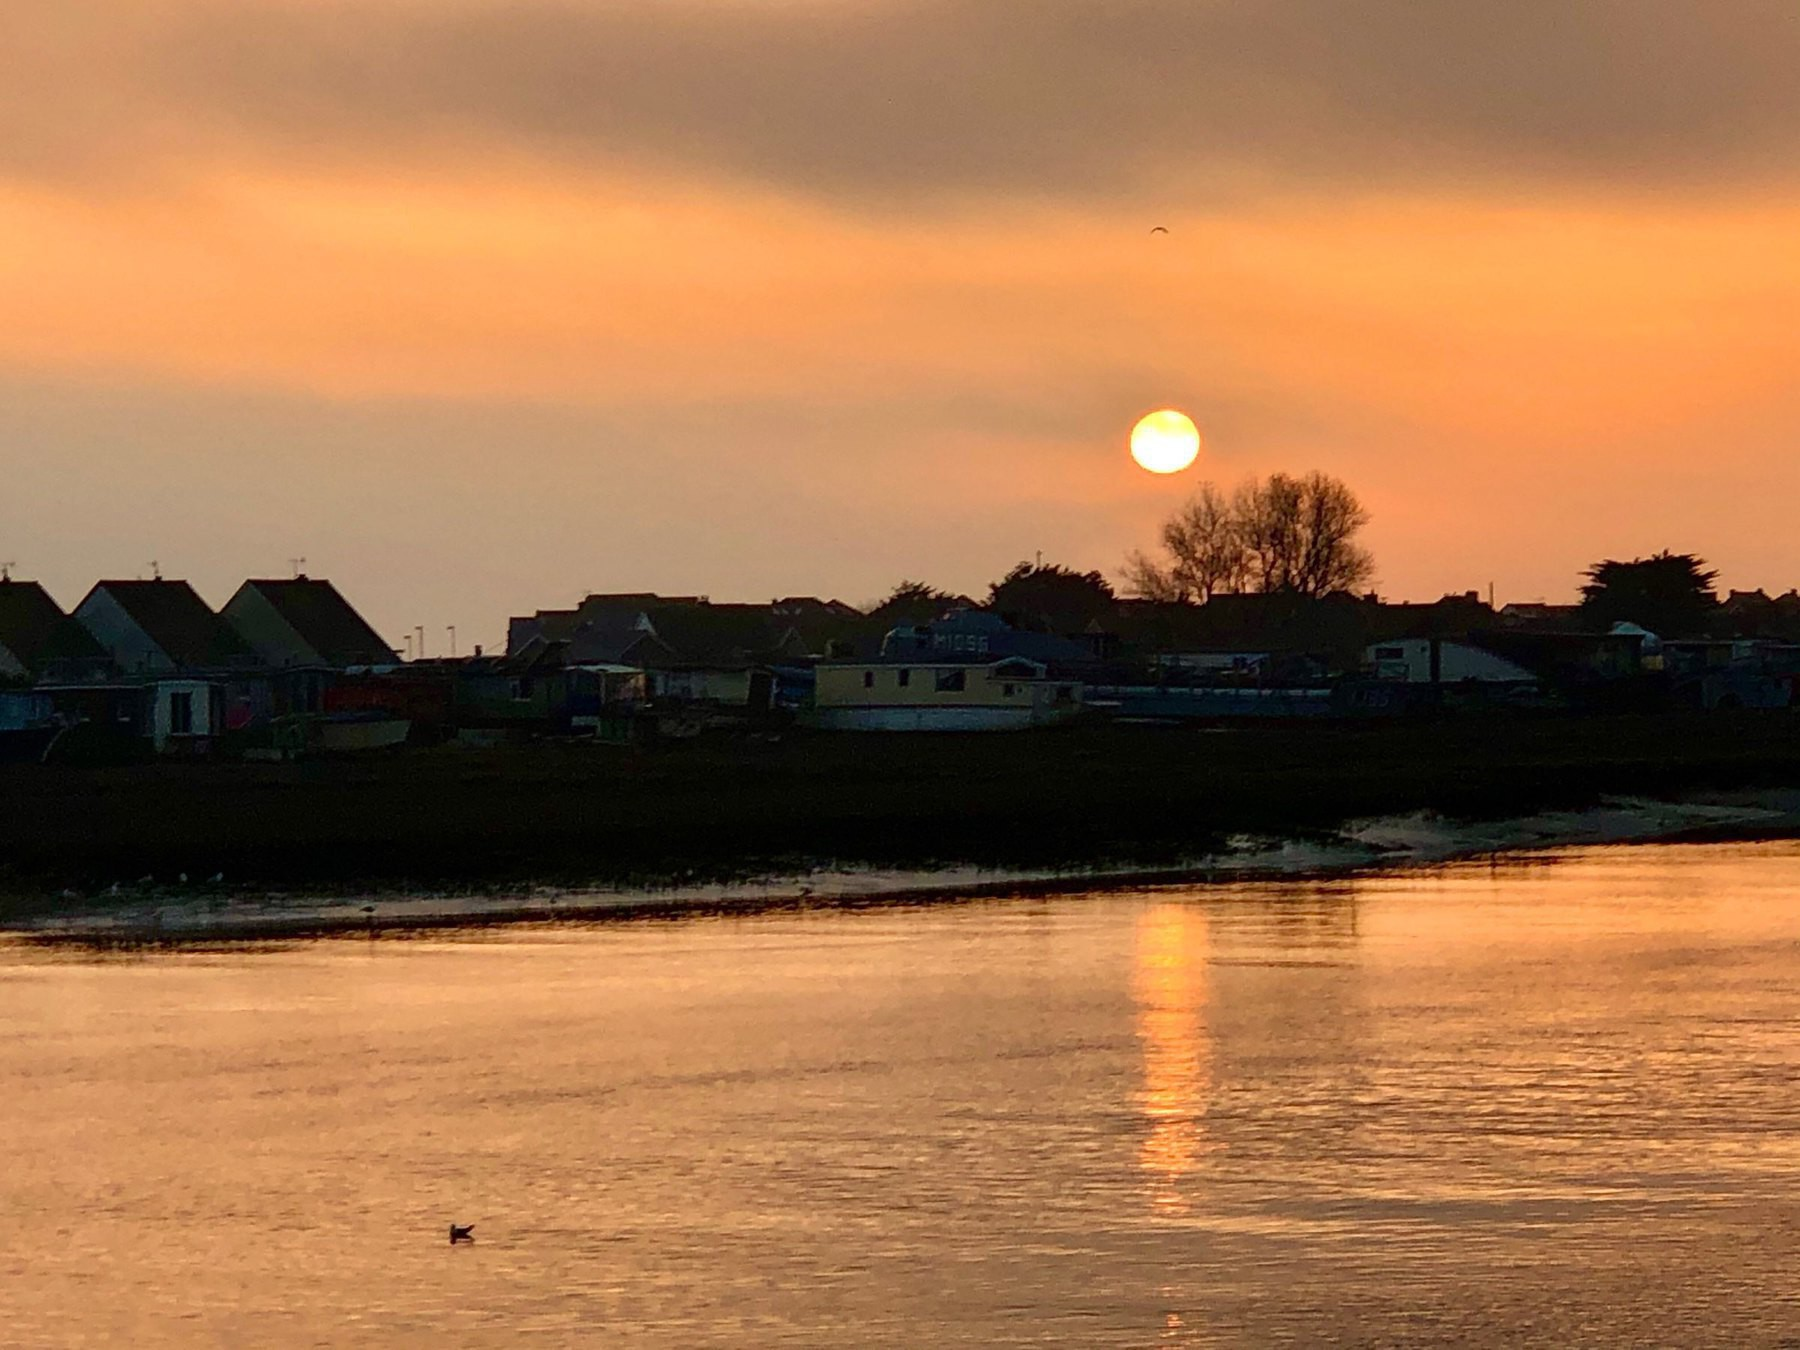 the sun sets over the Shoreham-by-Sea houseboats.